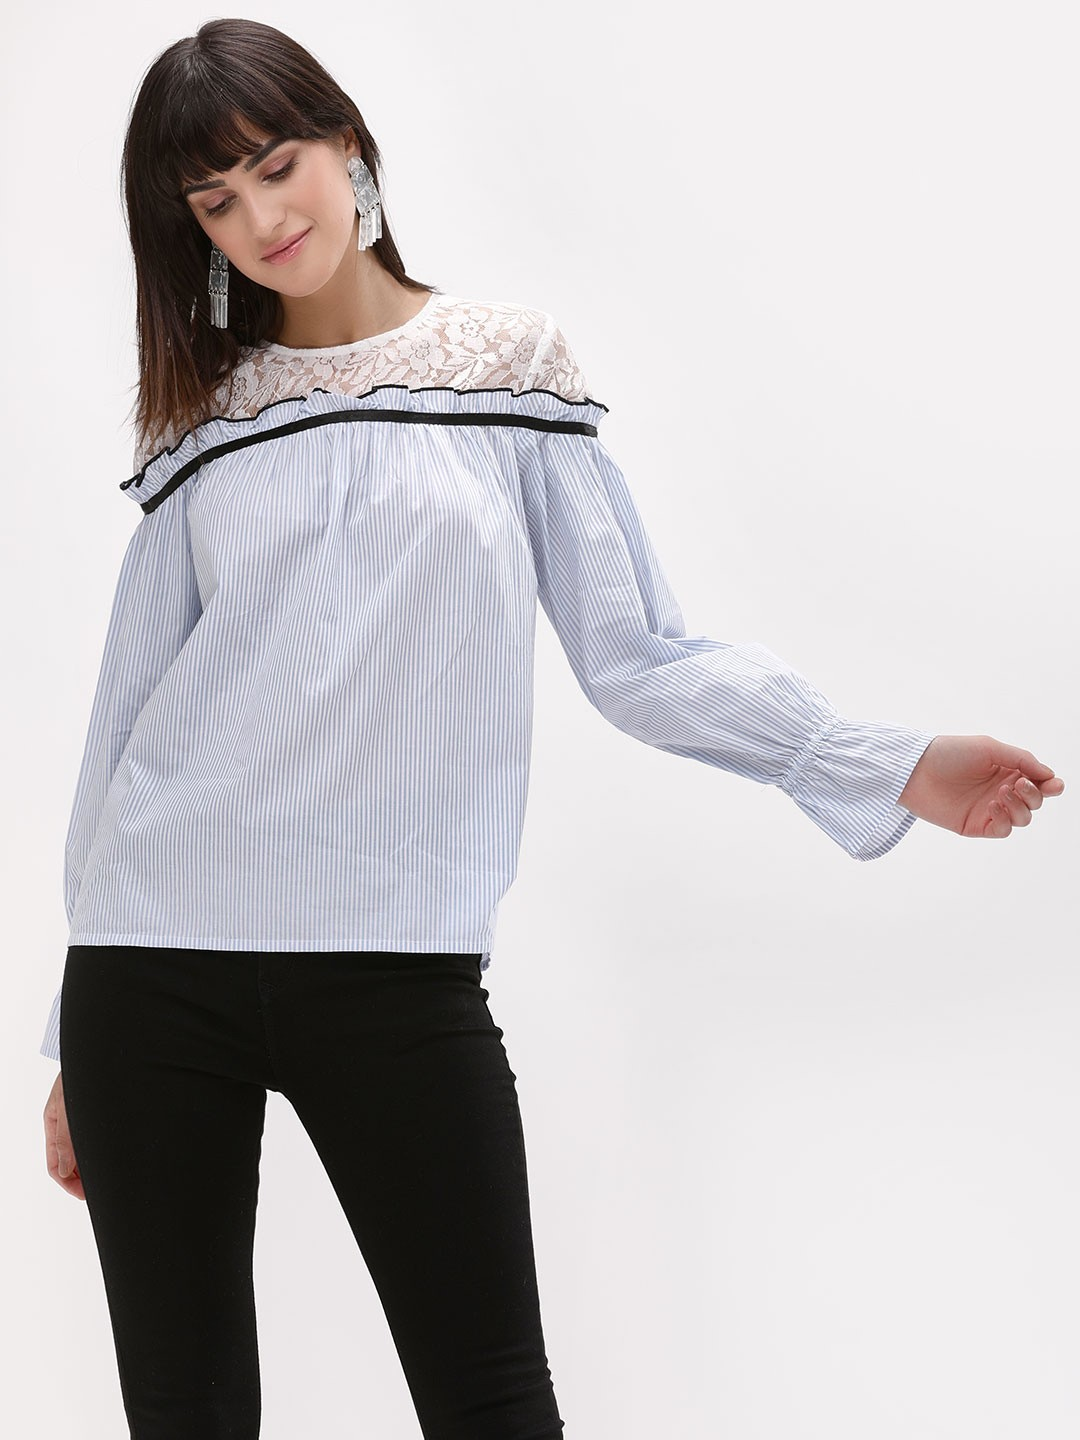 Origami Lily STRIPE Striped Top With Lace Detail 1